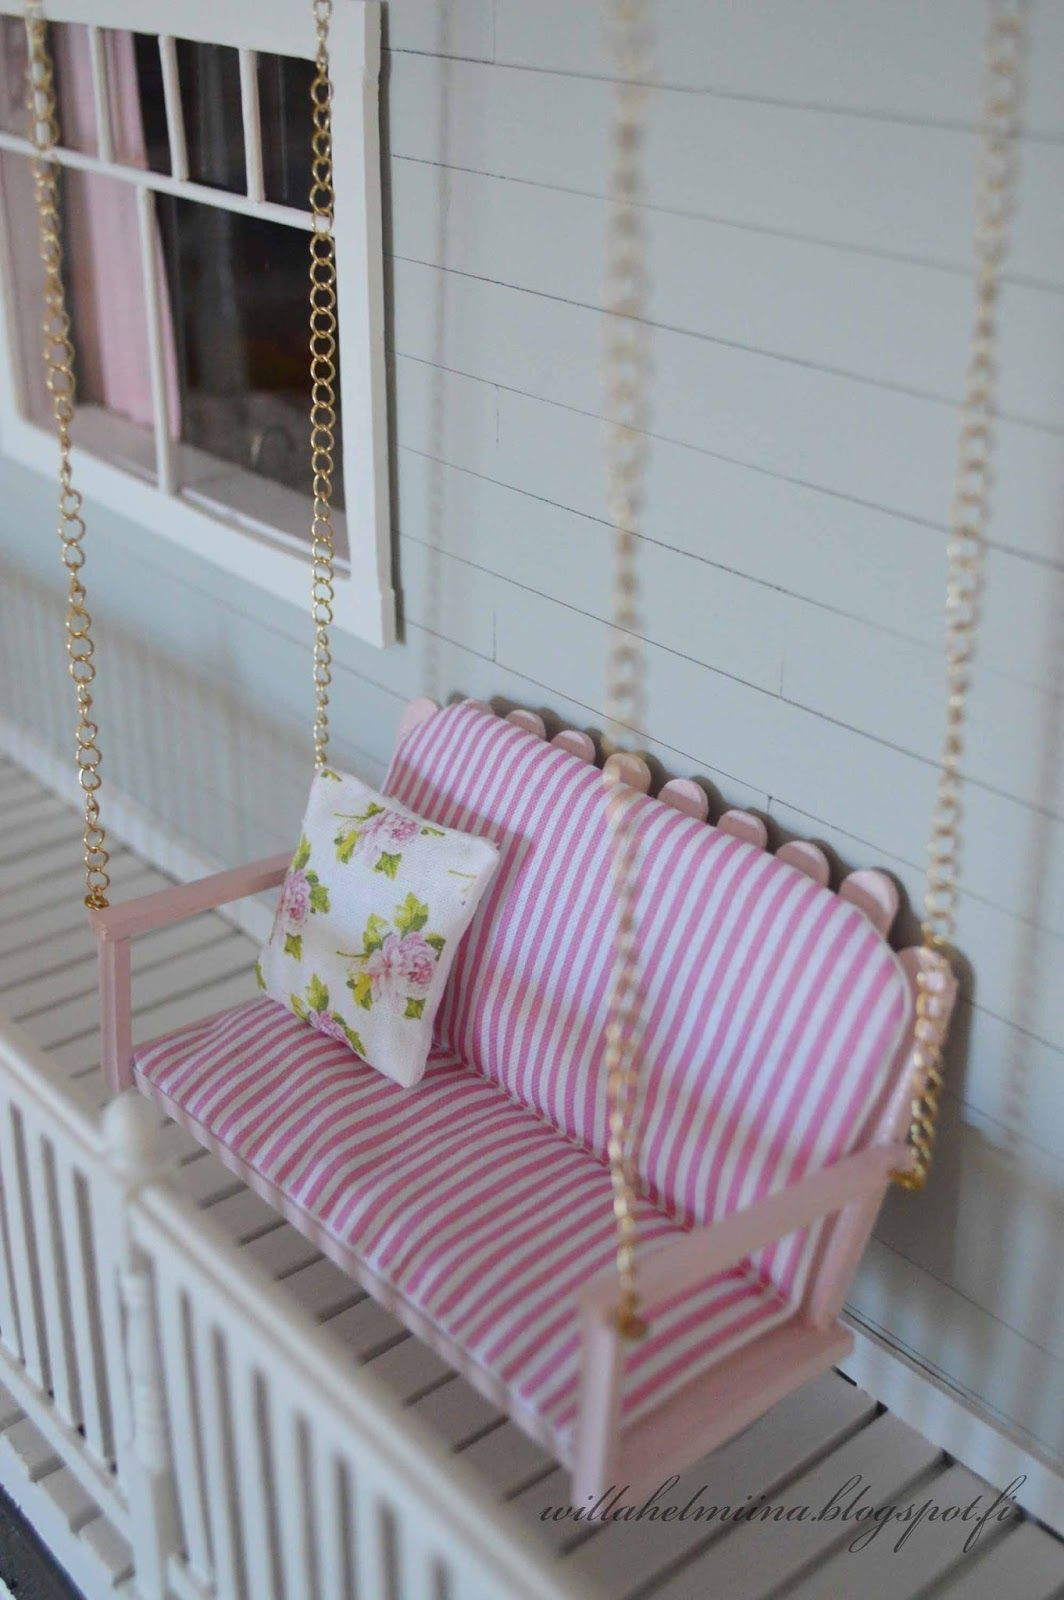 Hydrangea and porch swing tutorial... #barbiefurniture Hydrangea and porch swing tutorial... #barbiefurniture